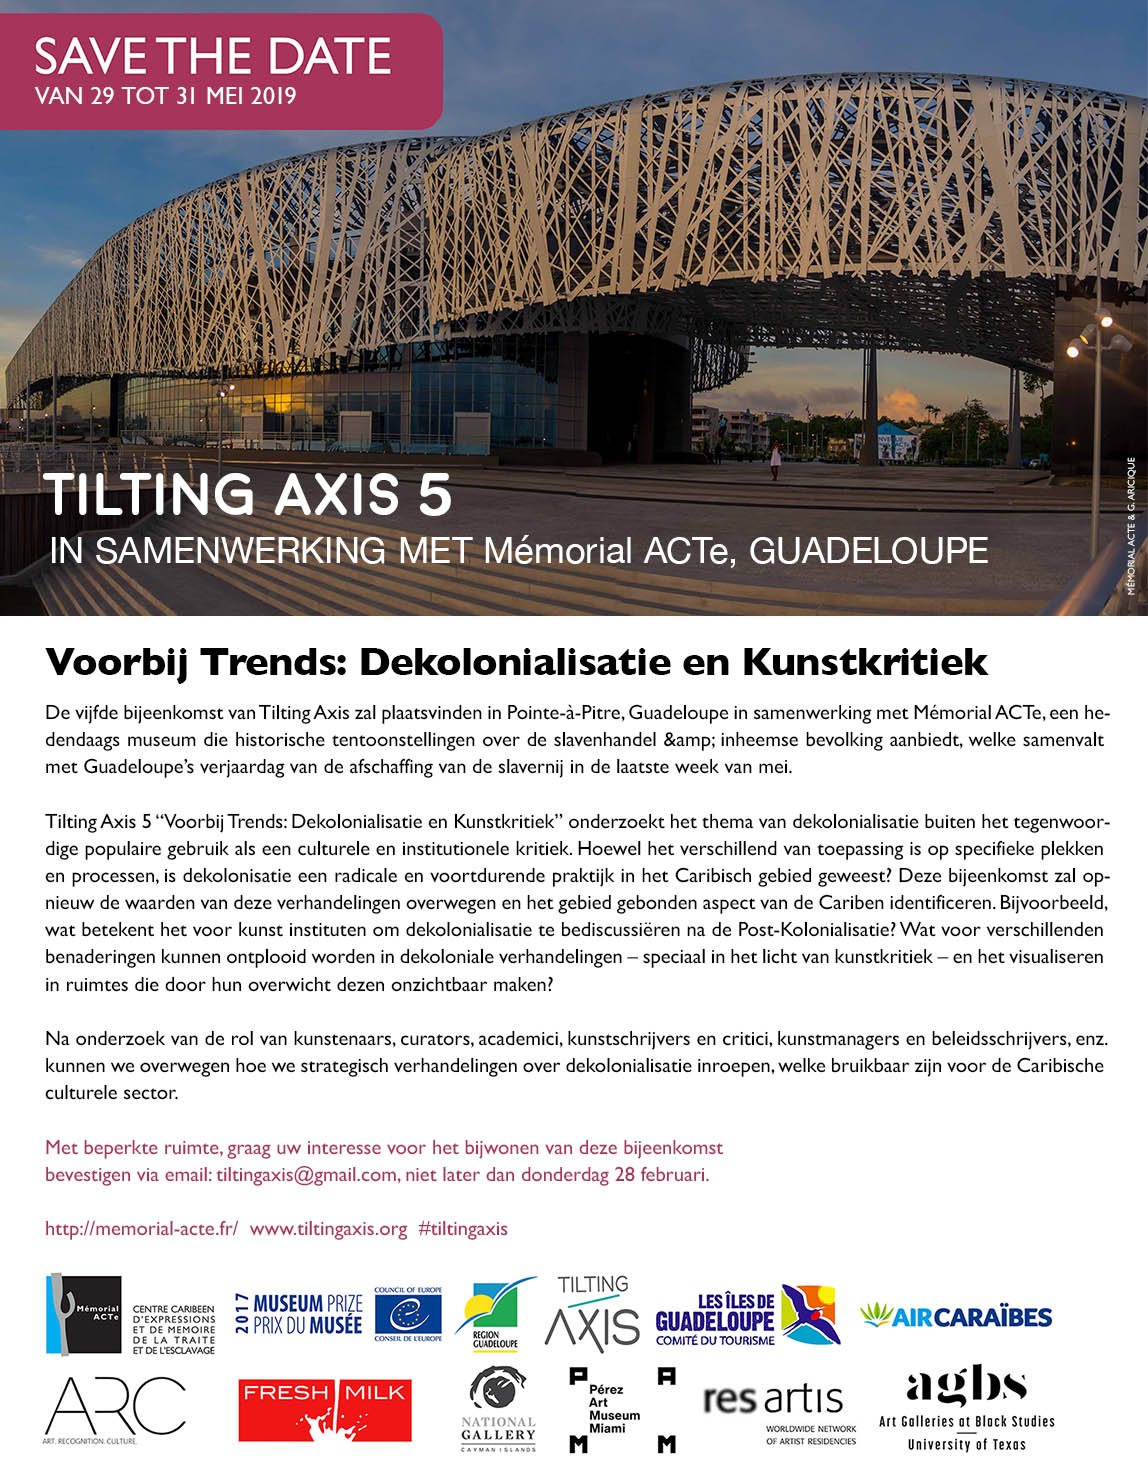 Tilting_Axis_5_Flyer_Dutch_r1.jpg